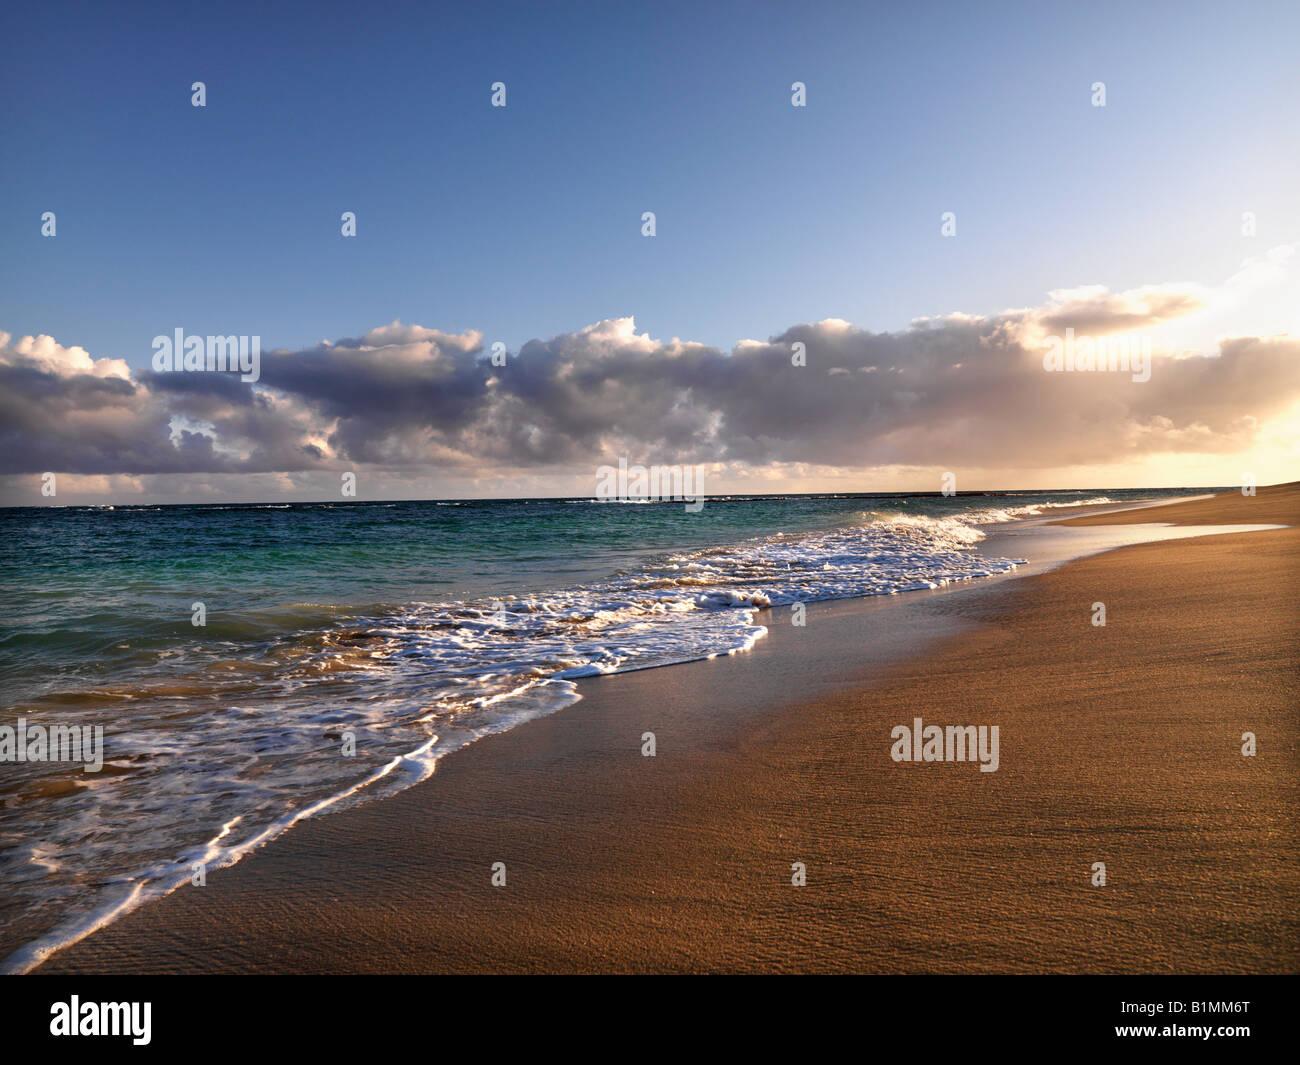 Waves lapping on the beach at dusk in Maui Hawaii - Stock Image